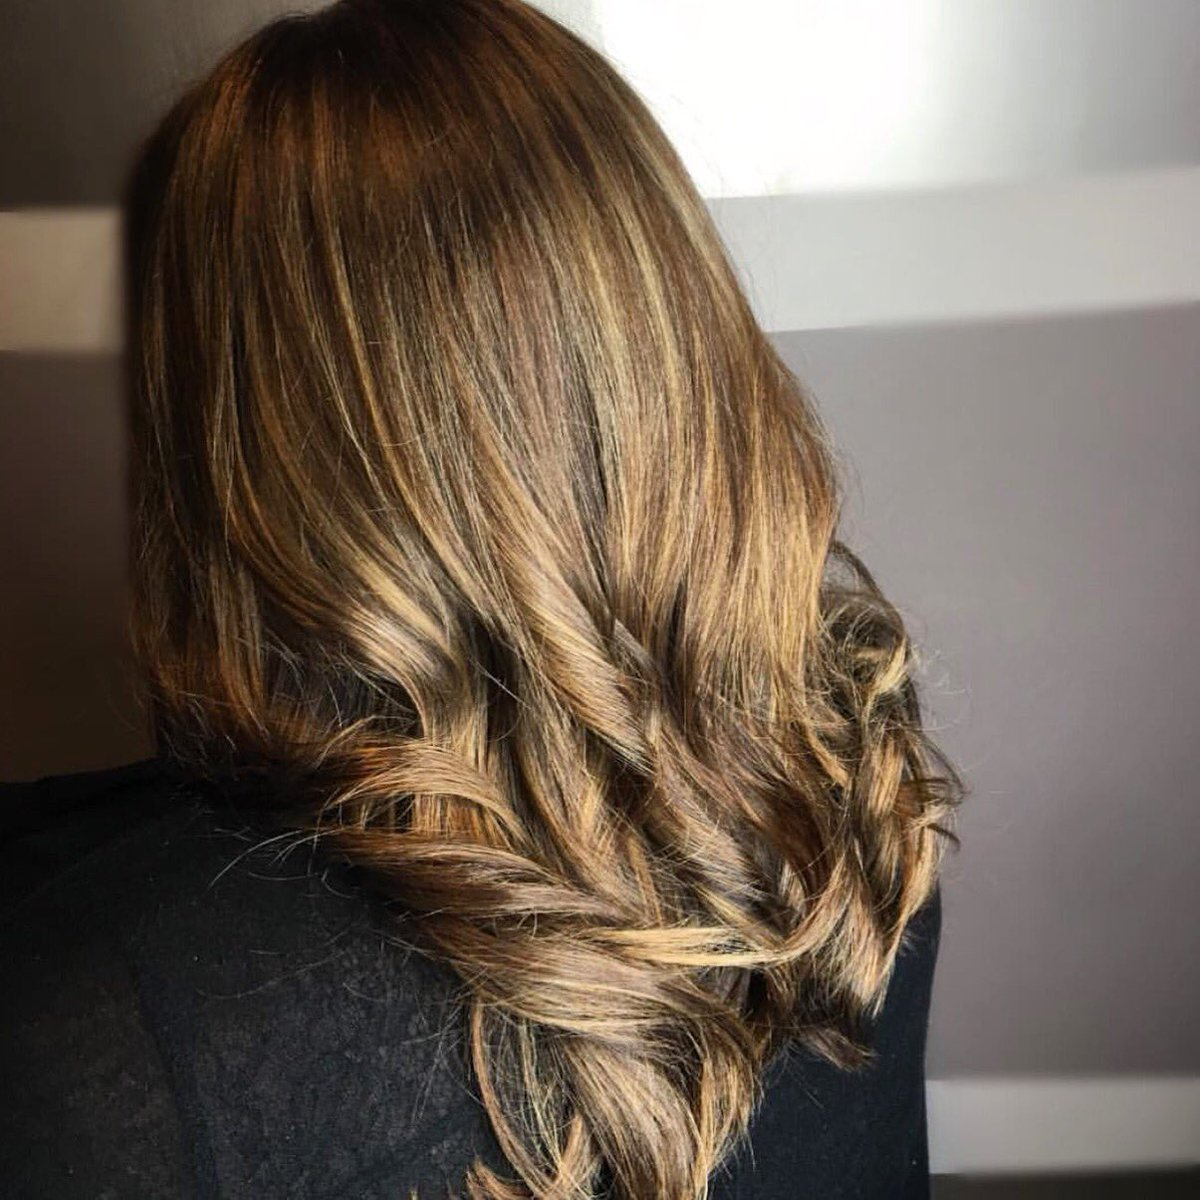 W Salon Rochester On Twitter A Little Dimension Hairstyle By